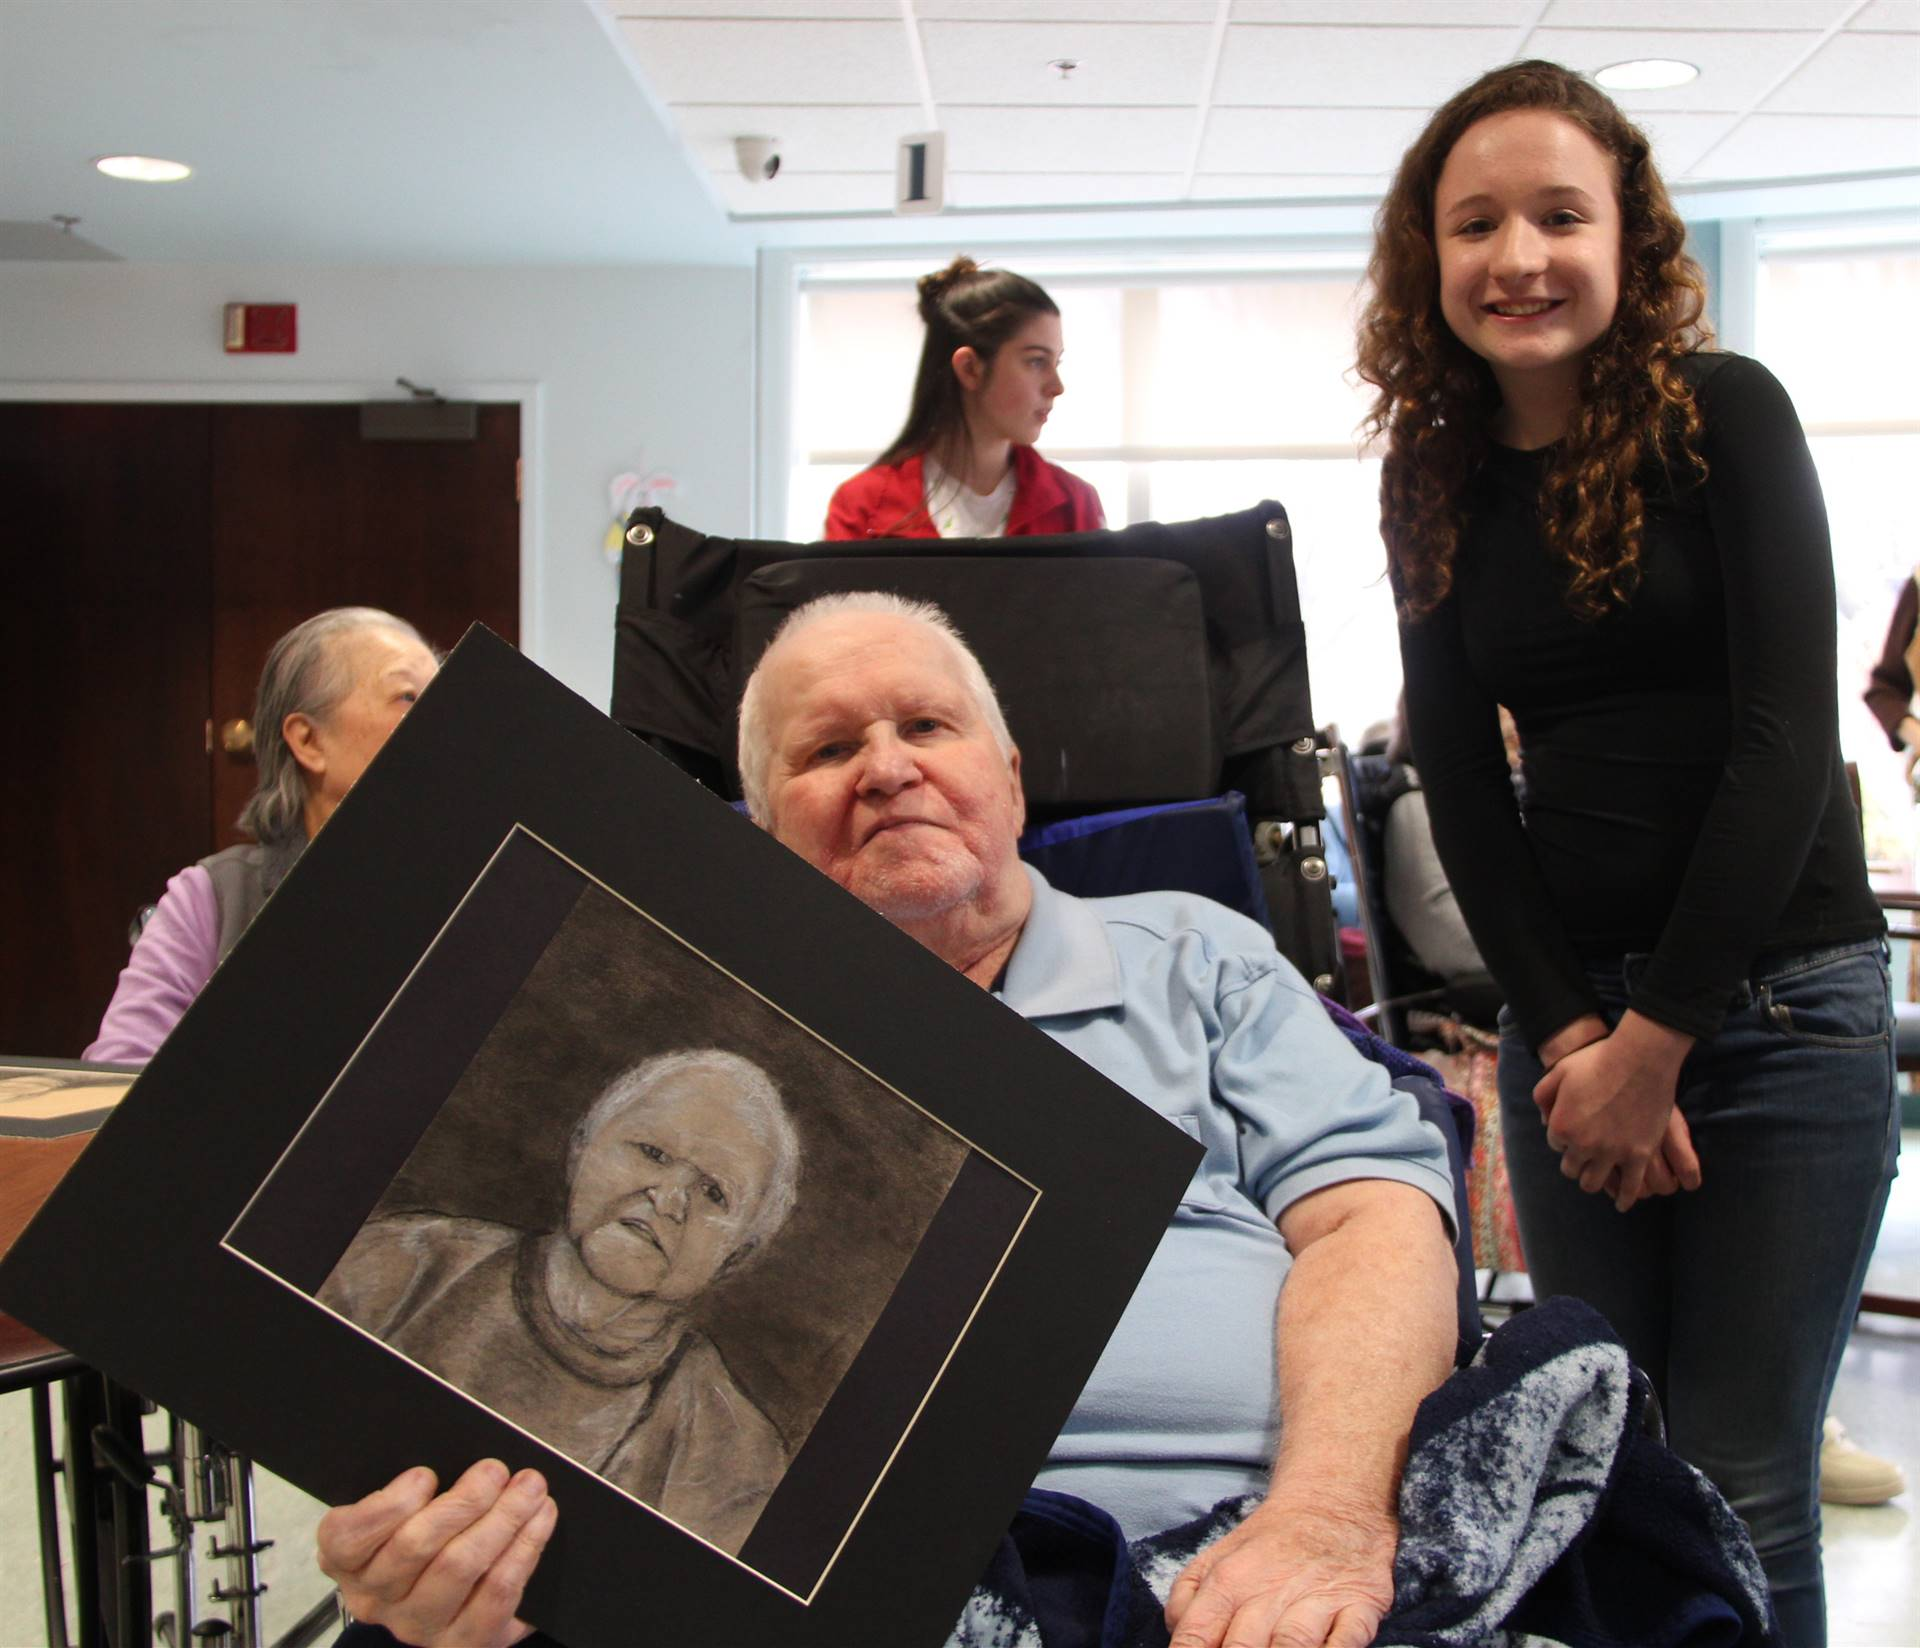 student and man smiling with picture